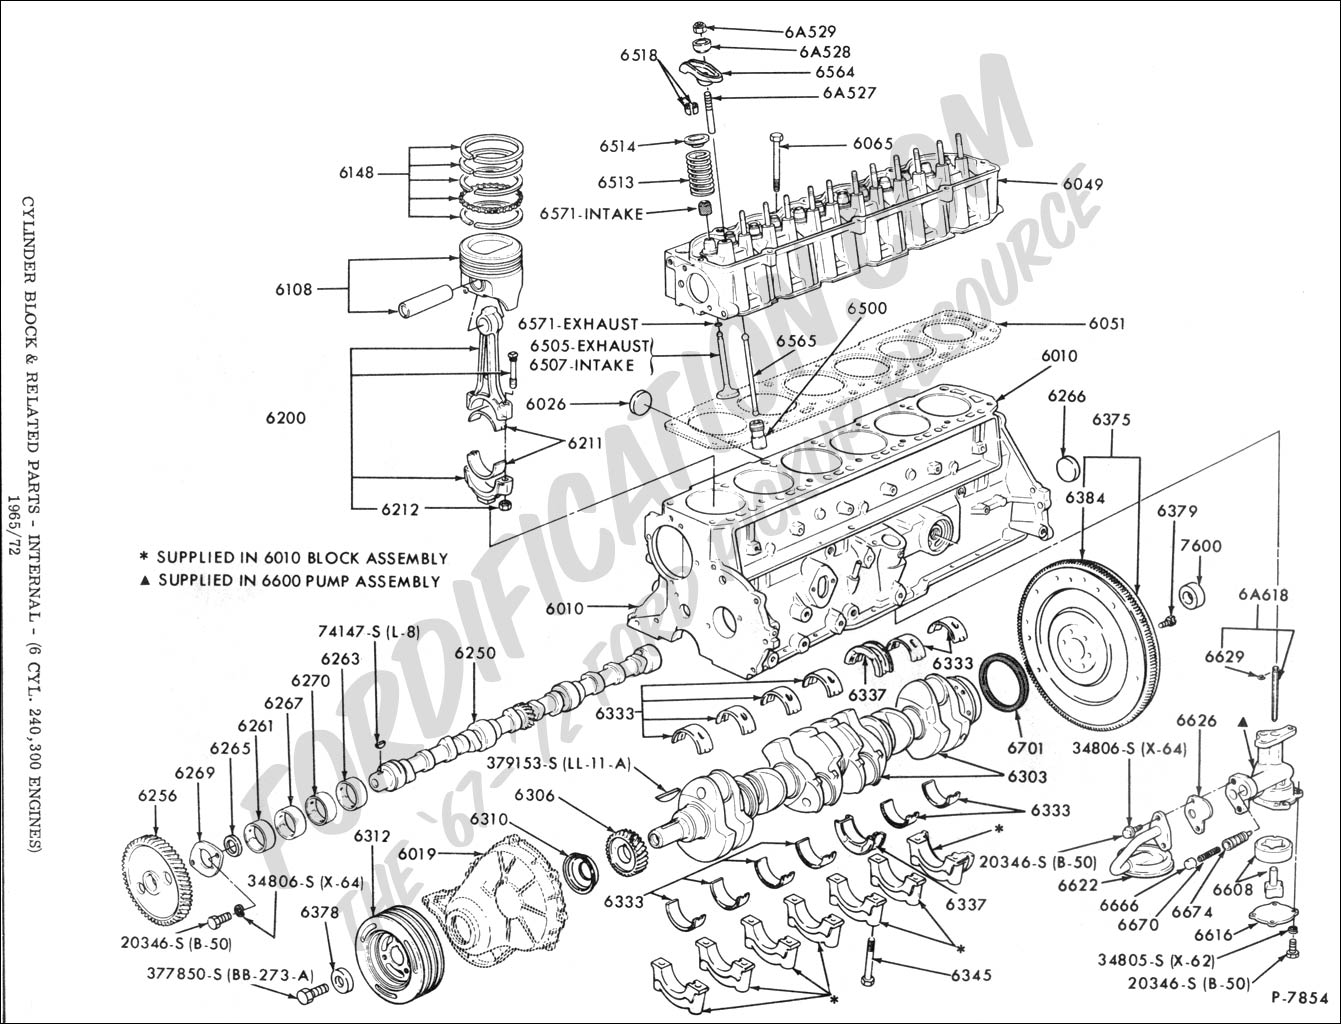 Ford 4 9l Engine Cylinder Diagram Golden Schematic Jeep Yj Truck Technical Drawings And Schematics Section E Related Components